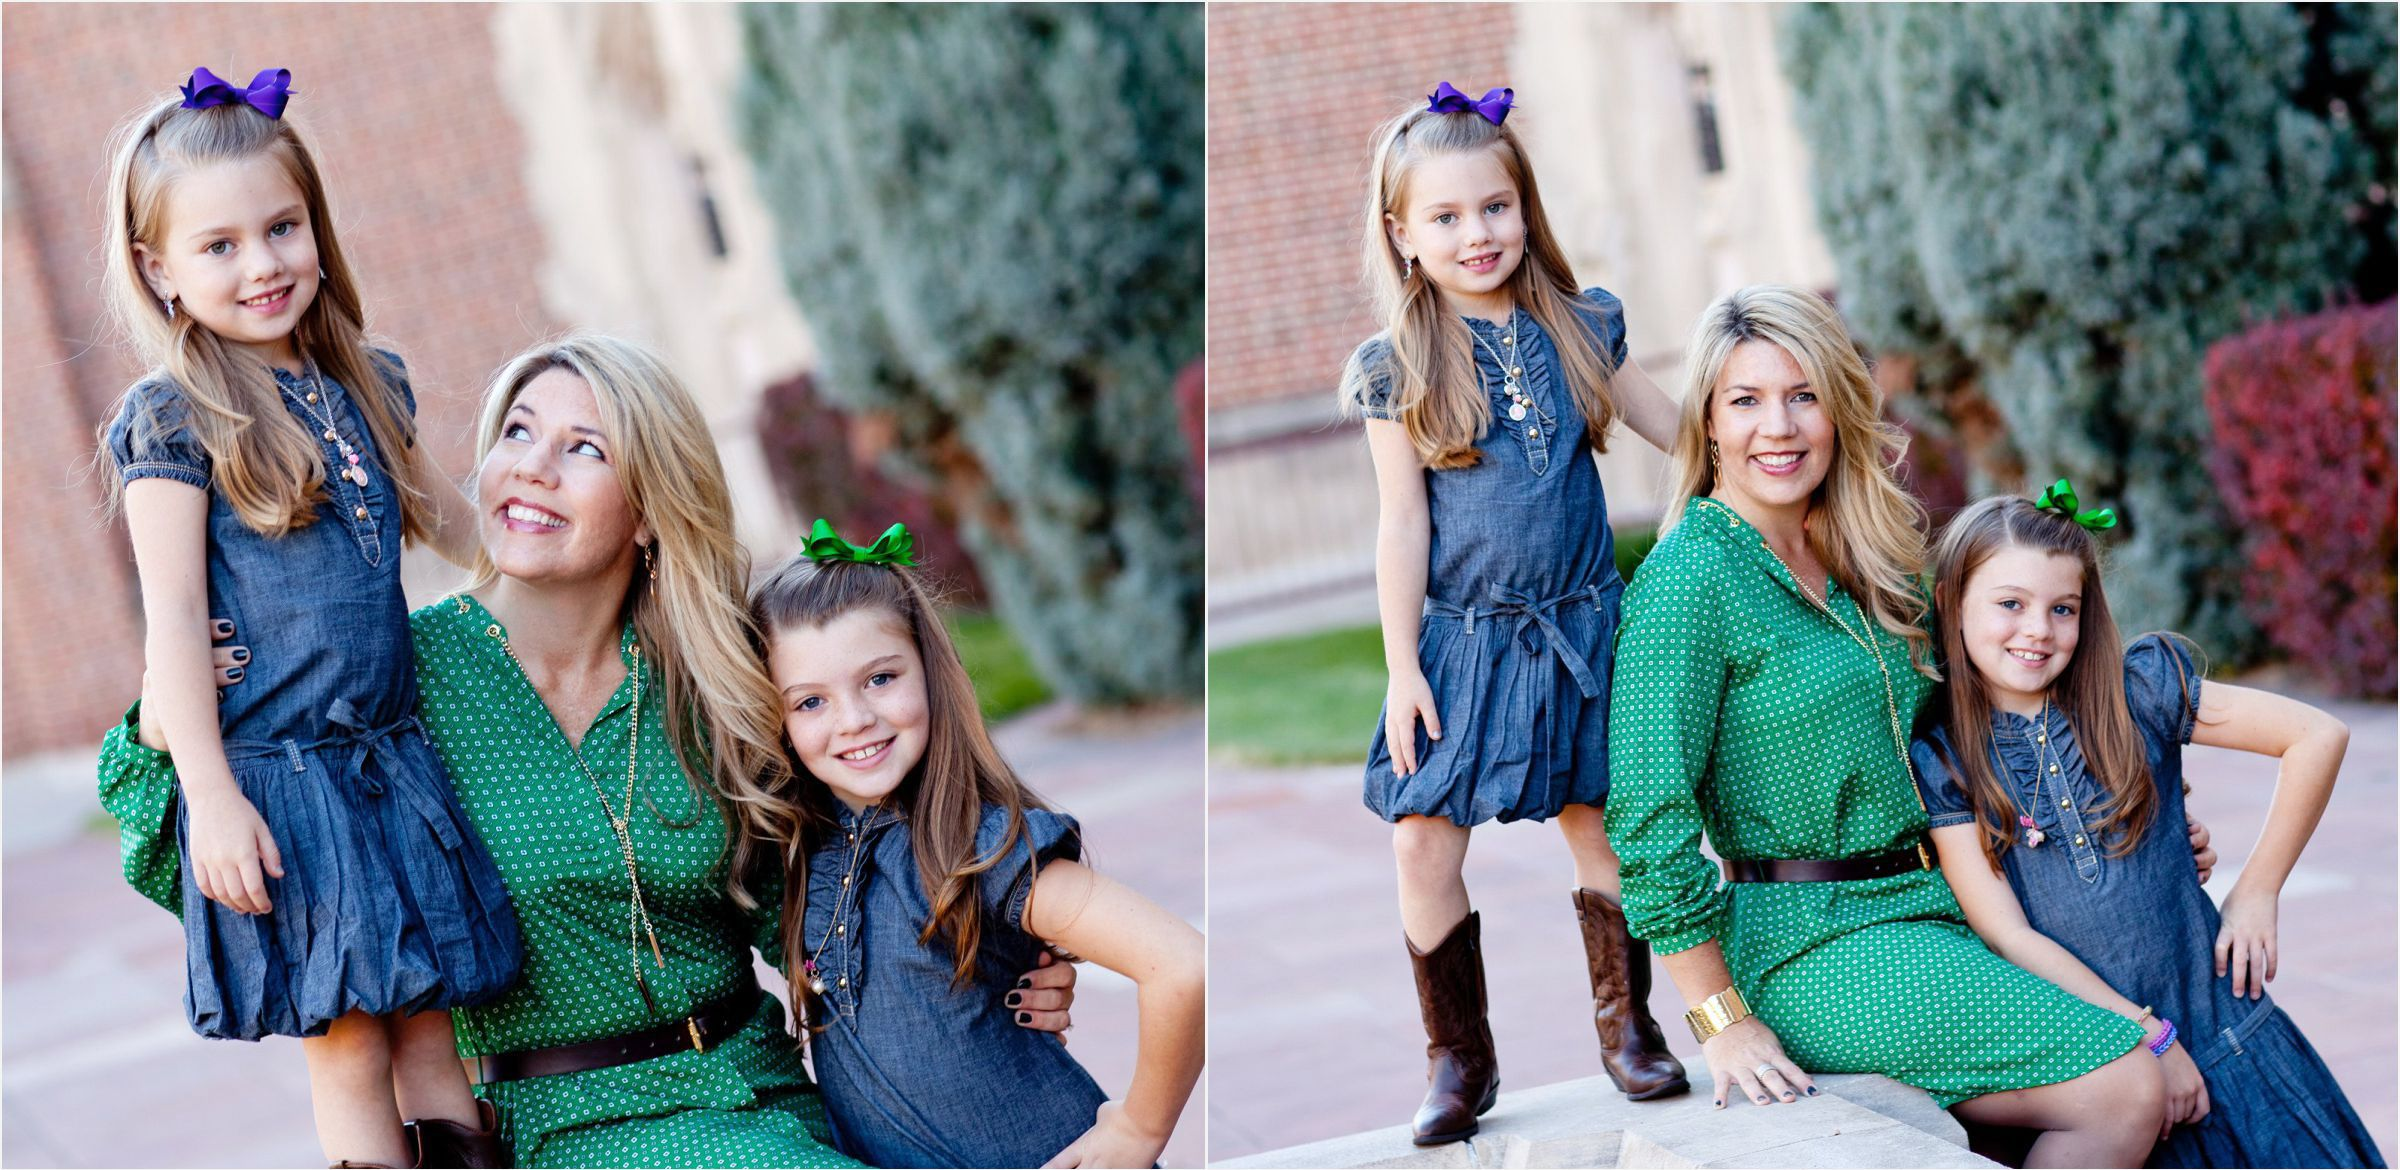 mother-daughter-collegiate-type-photo-shoot-at-Denver-University-003